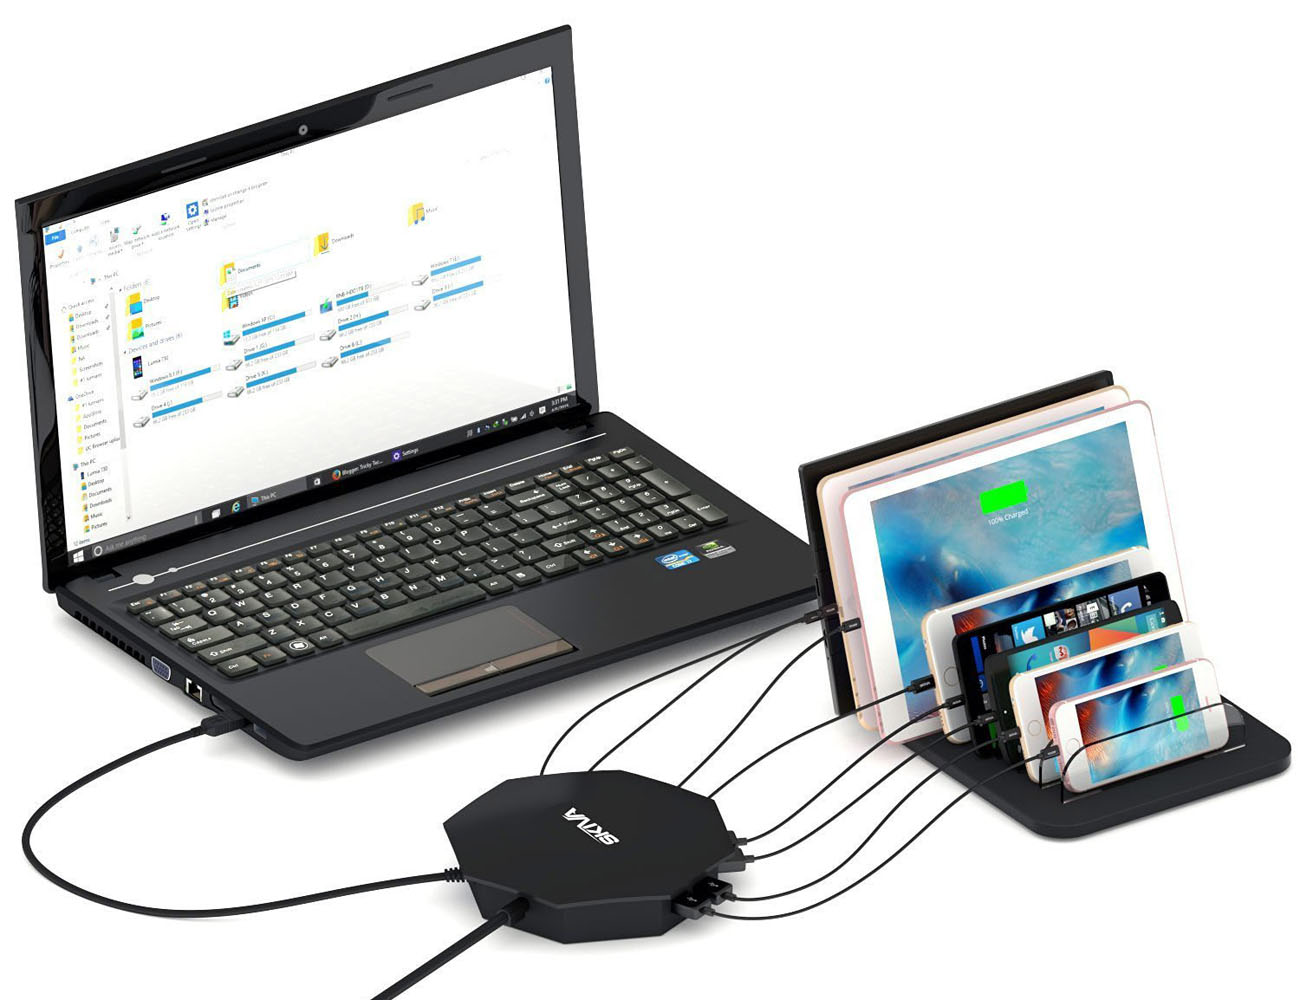 Ultimate 8 Port USB 3.0 Hub with Rapid Charging for iPhone, iPad, Android etc.